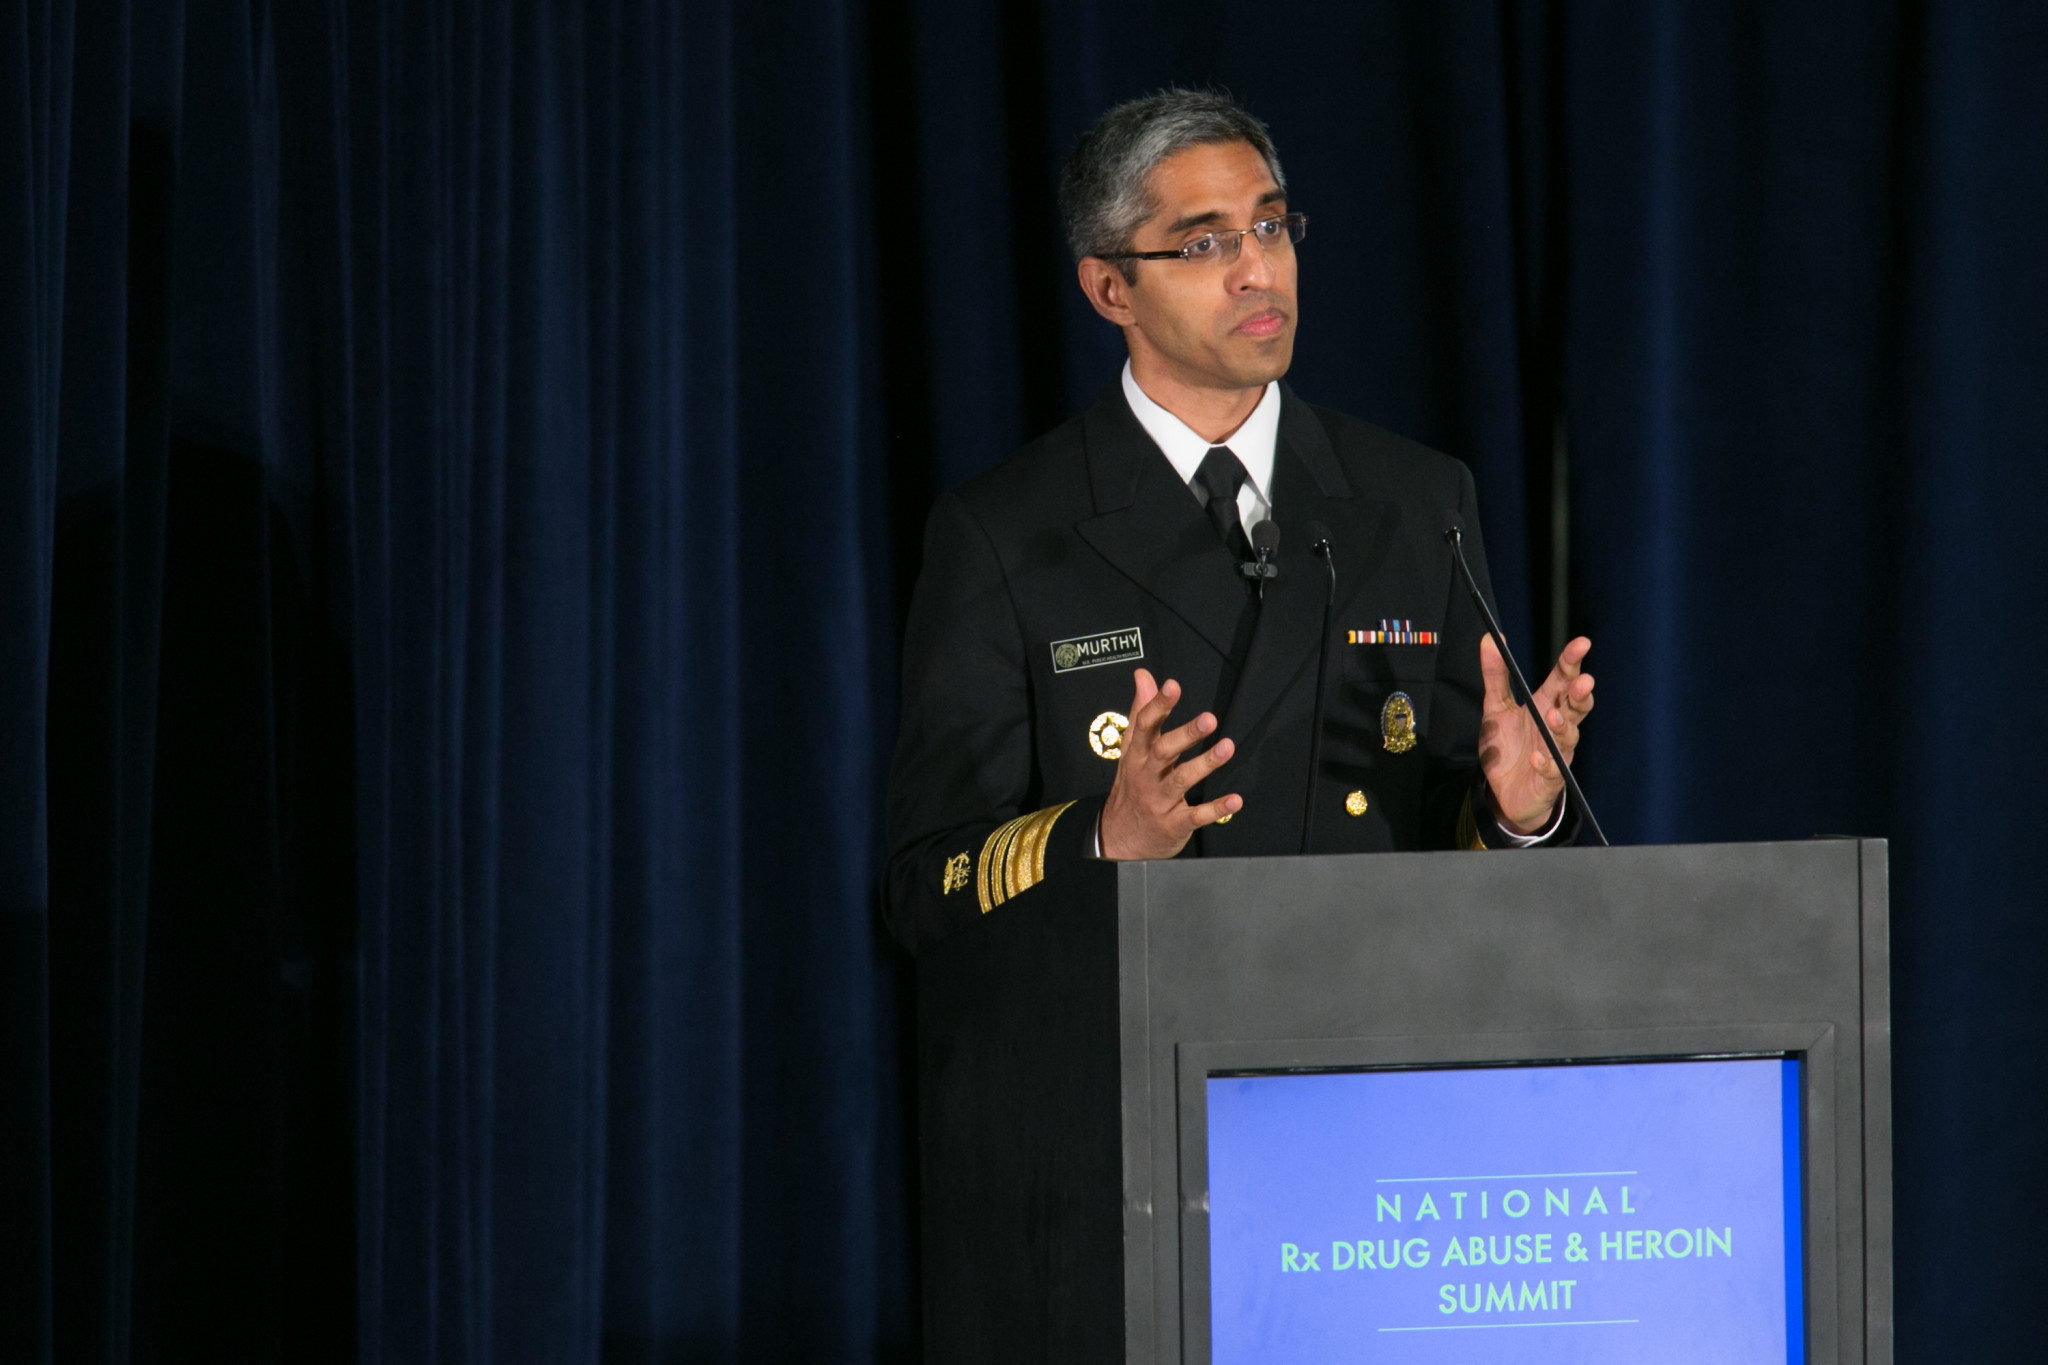 America's former Surgeon General Vivek Murthy has been appointed as an independent Board member at the USOPC as a replacement for ex-New York City Deputy Mayor Dan Doctoroff, who has stood down ©Getty Images